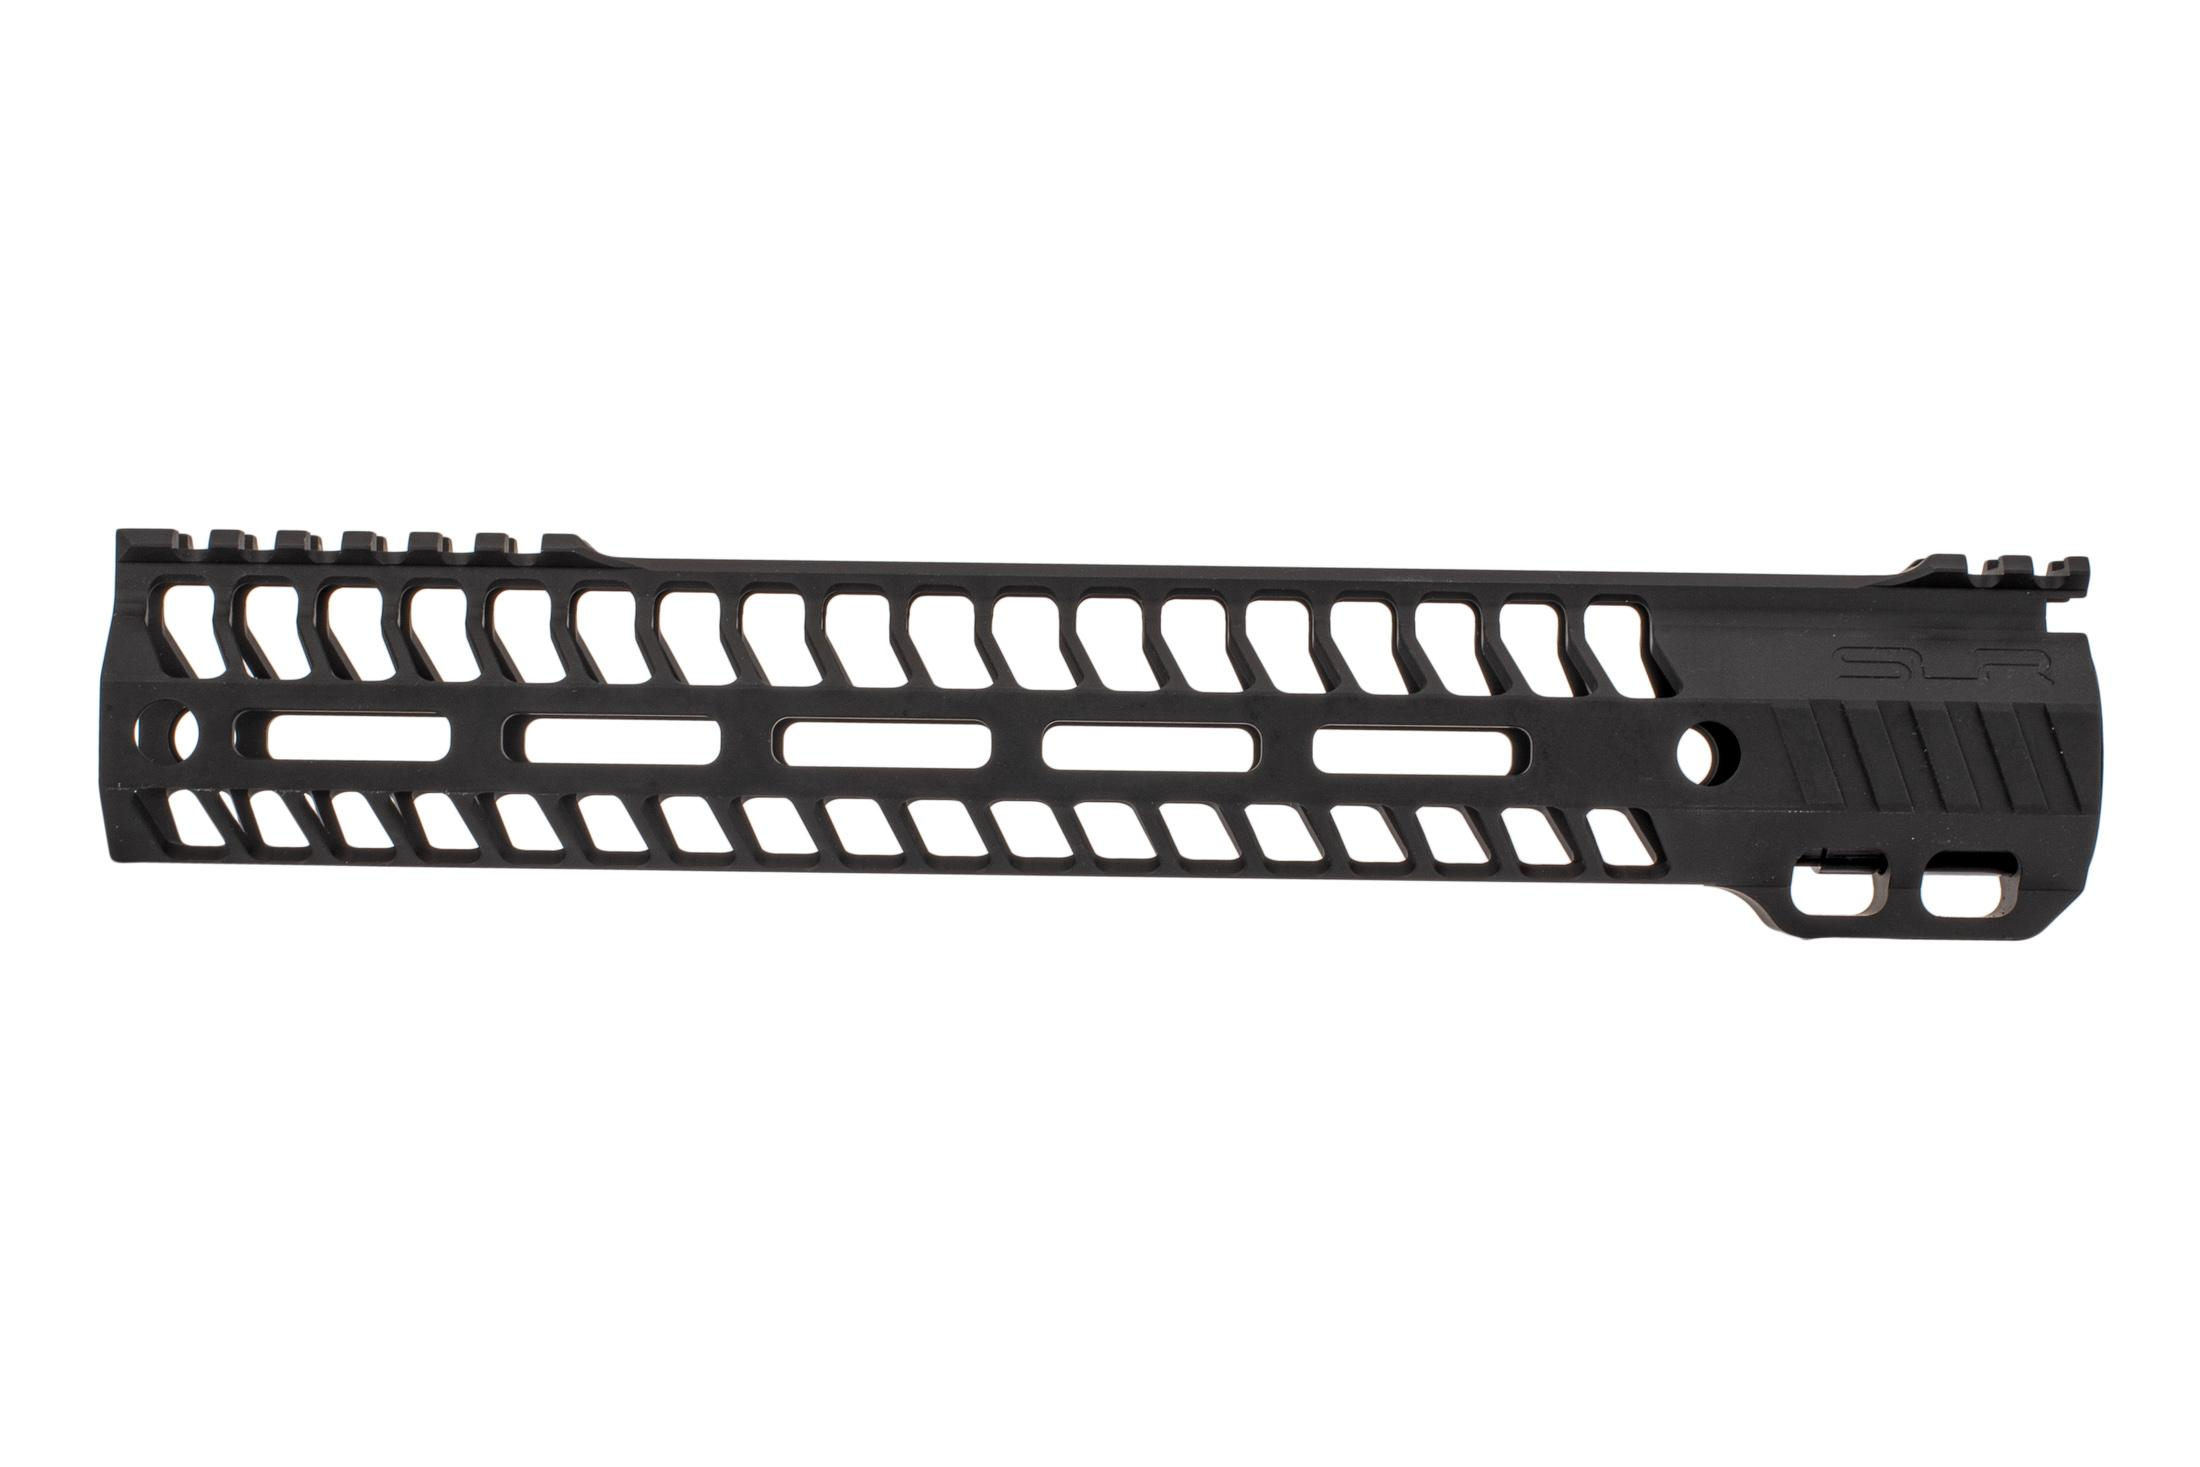 SLR Rifleworks M-LOK HELIX rail is 11.7 for AR15 with black anodized finish and interrupted top rail